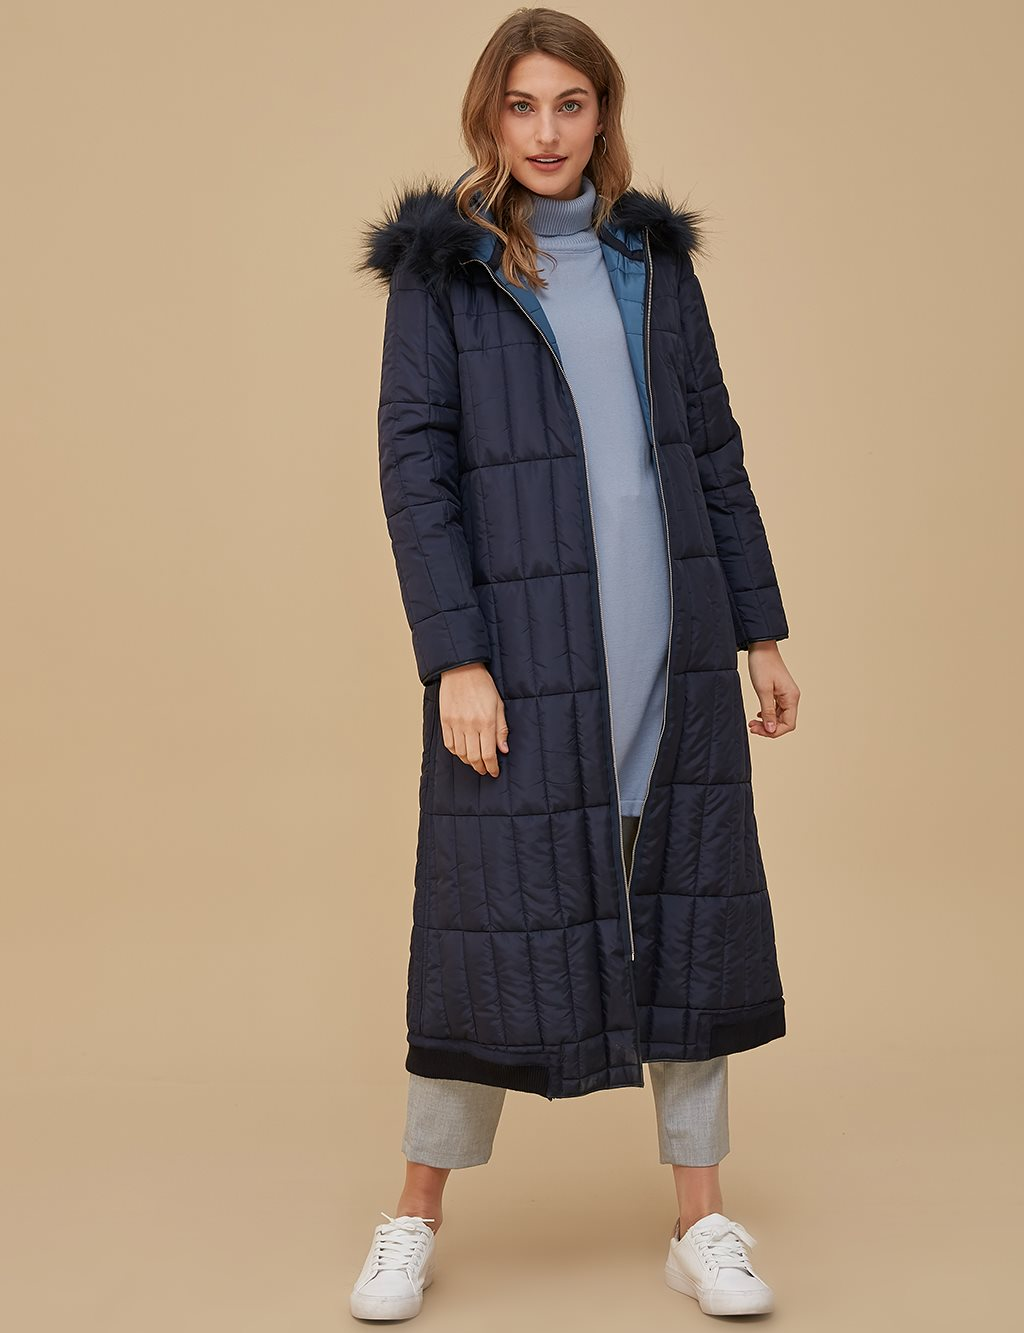 Double Sided Anorak A9 27020 Navy